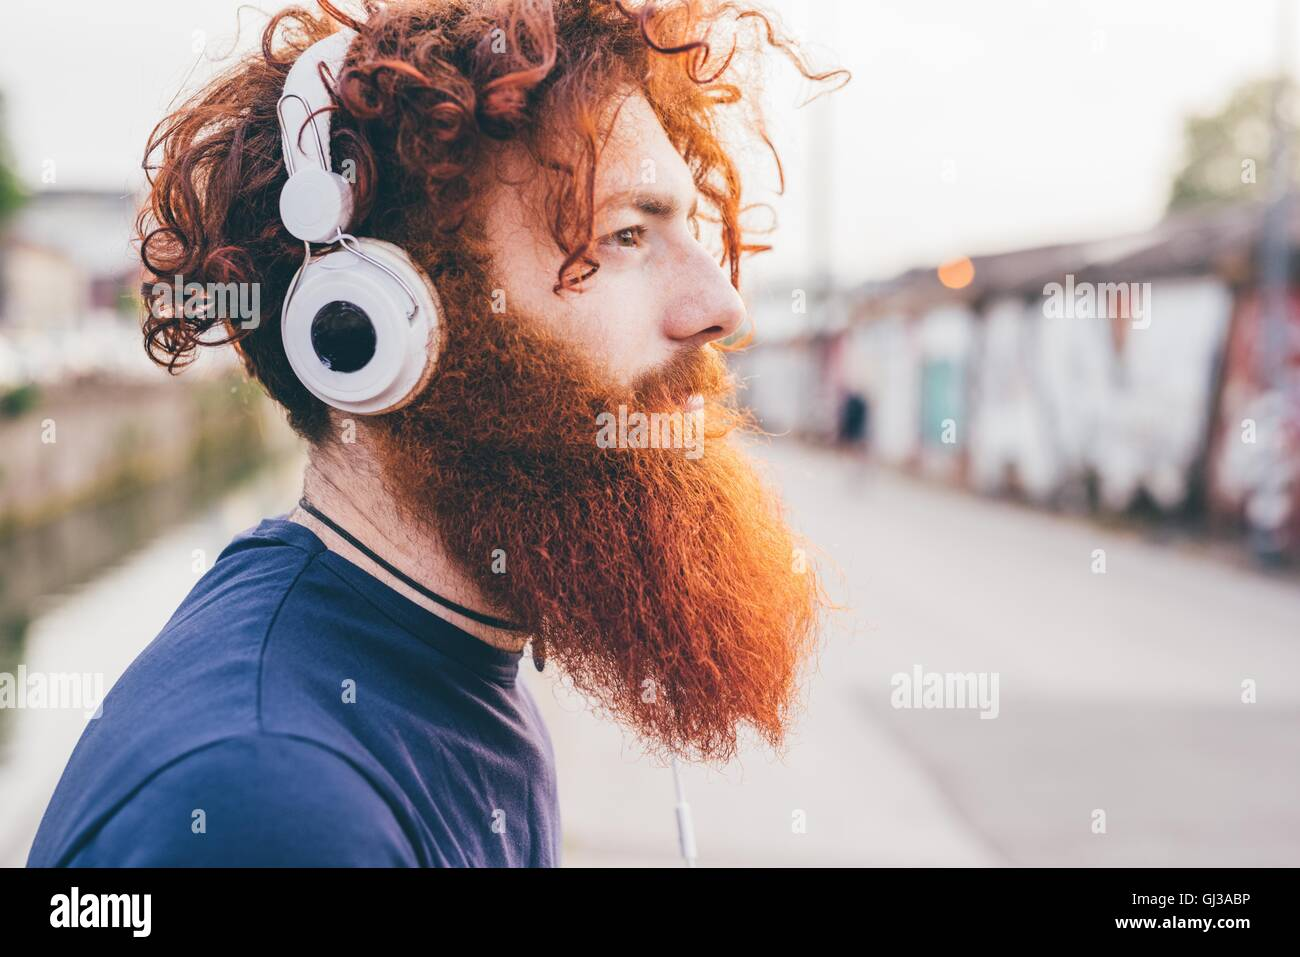 Young male hipster with red hair and beard listening to headphones in city - Stock Image